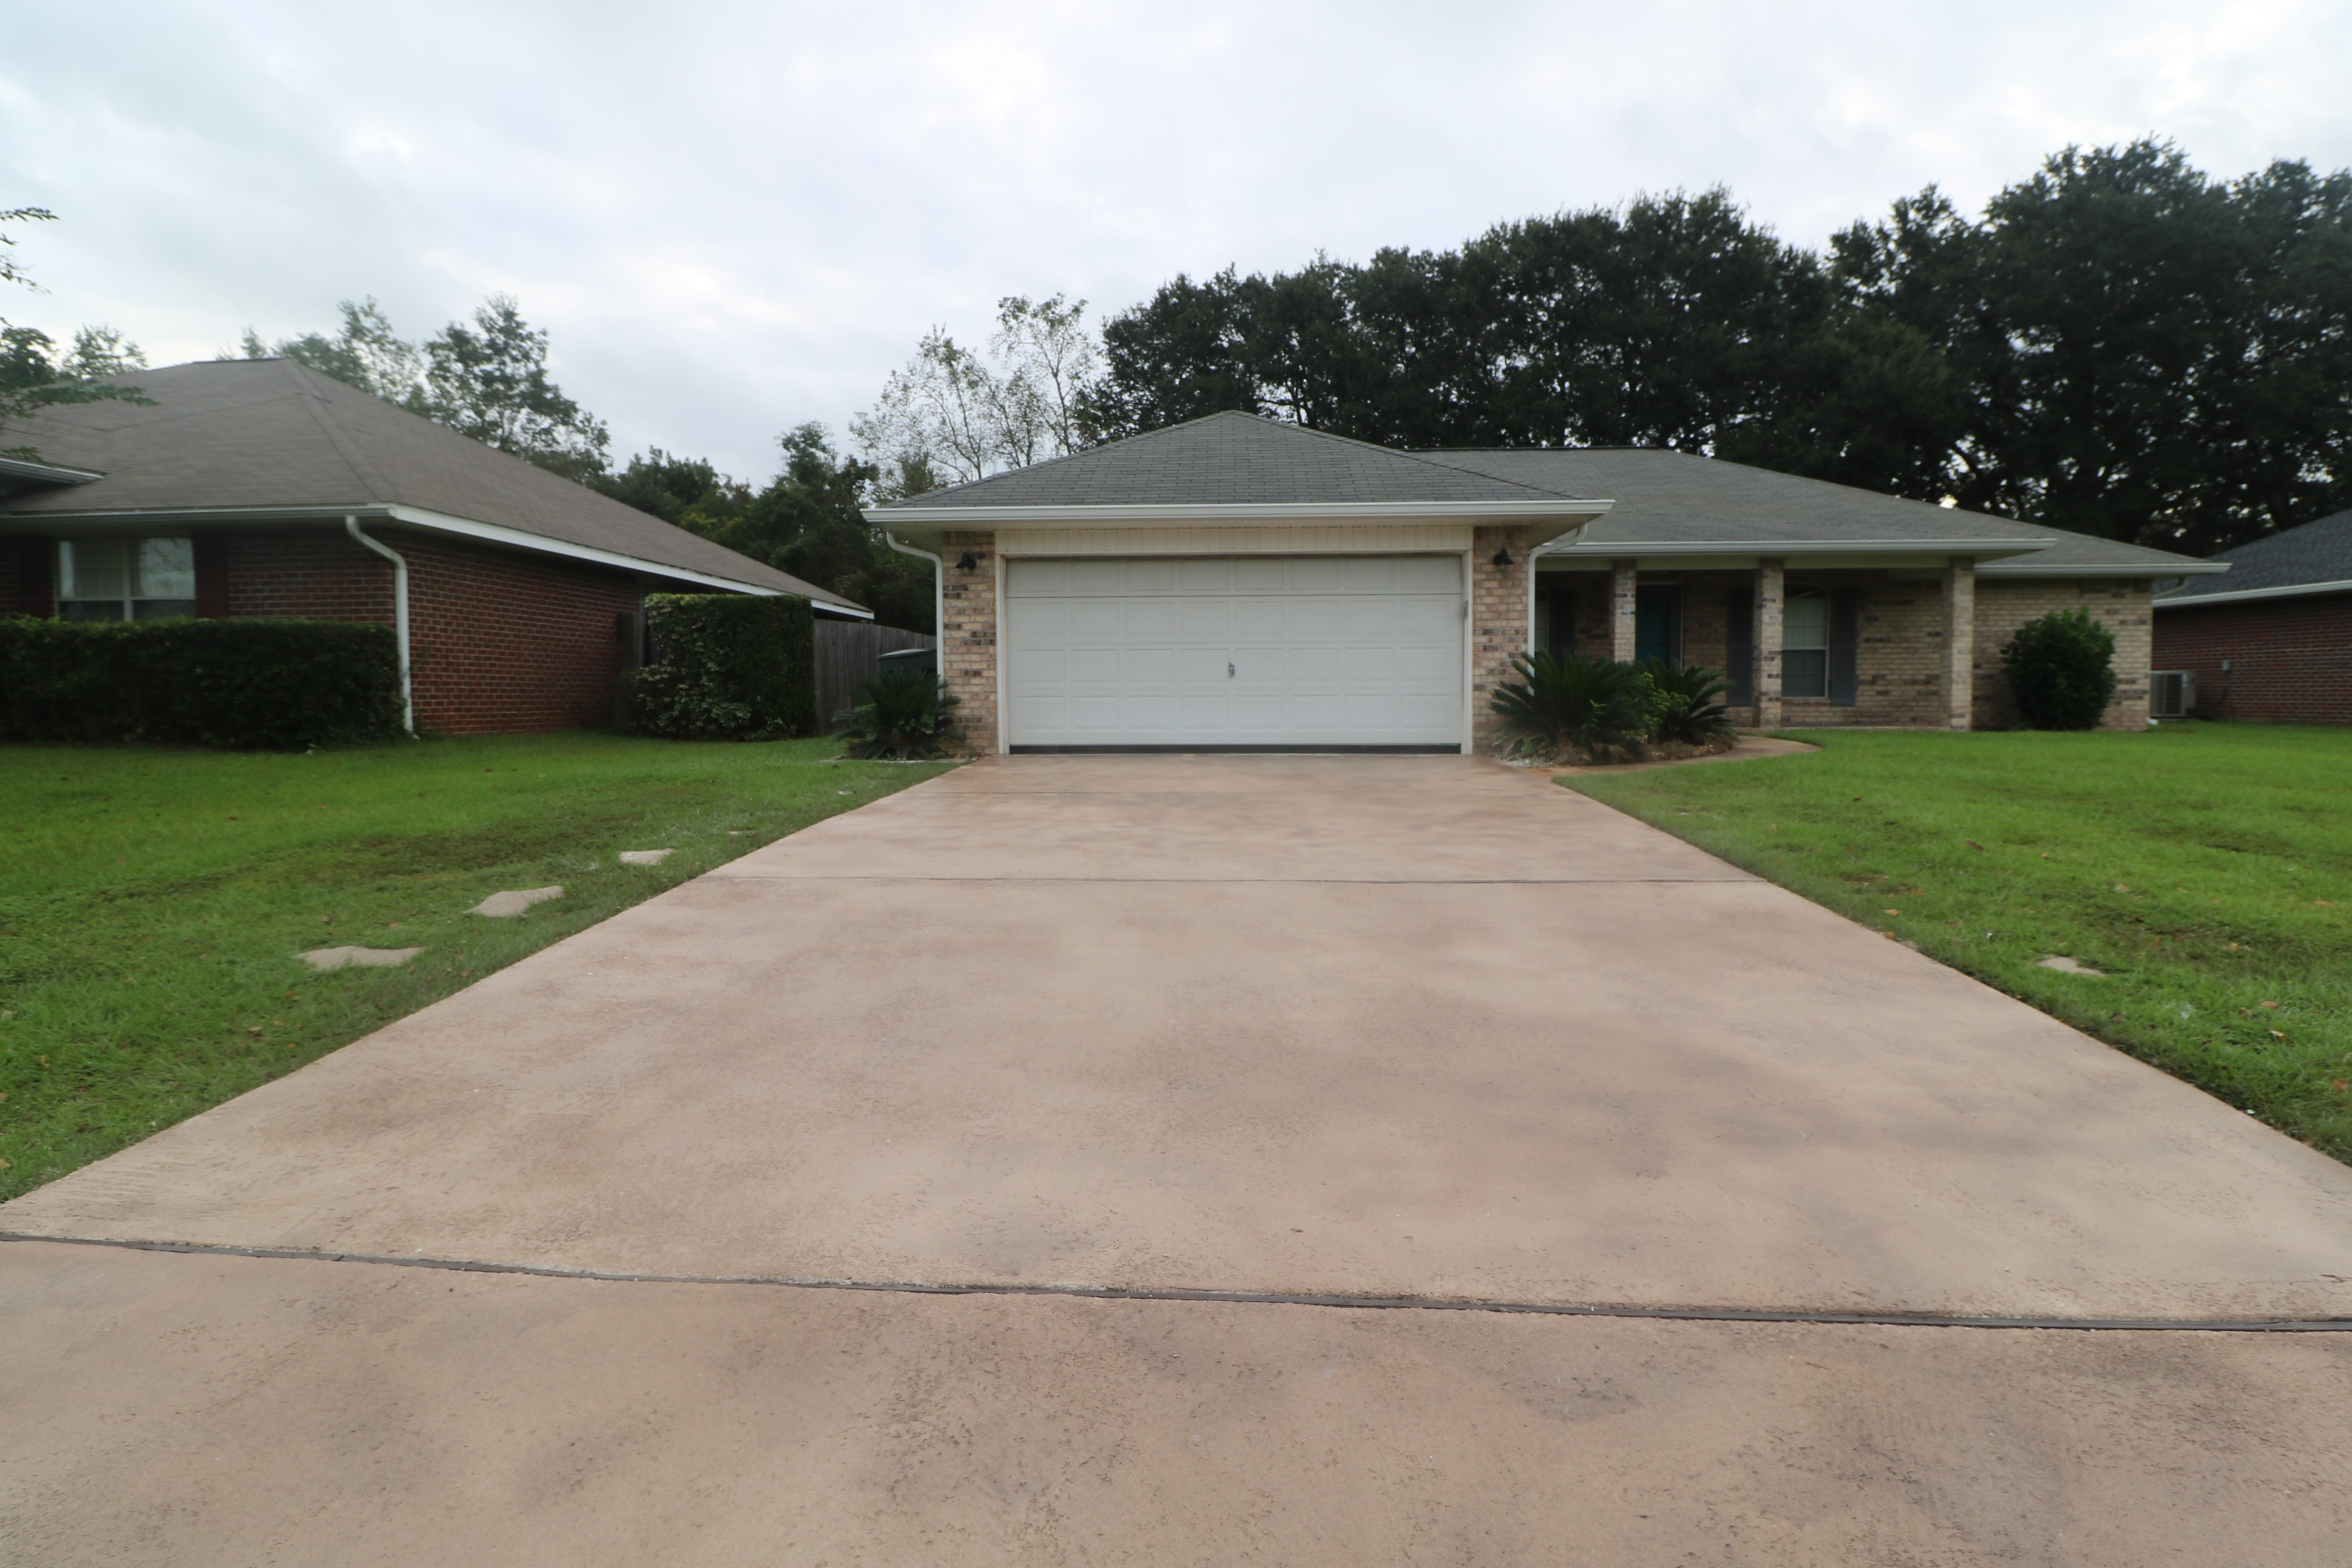 Driveway staining